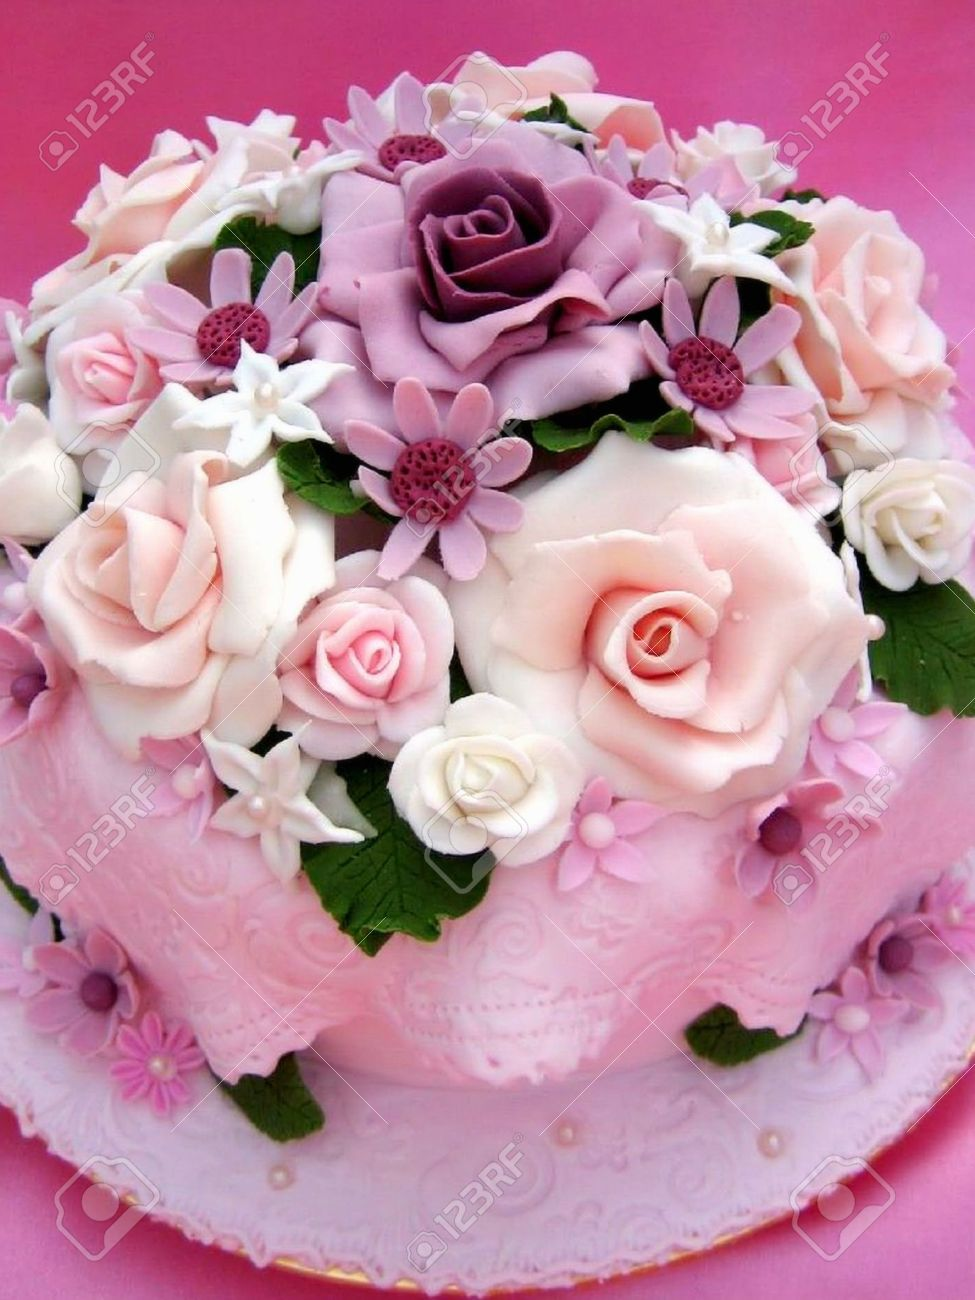 Flower Colorful Birthday Cake Stock Photo Picture And Royalty Free